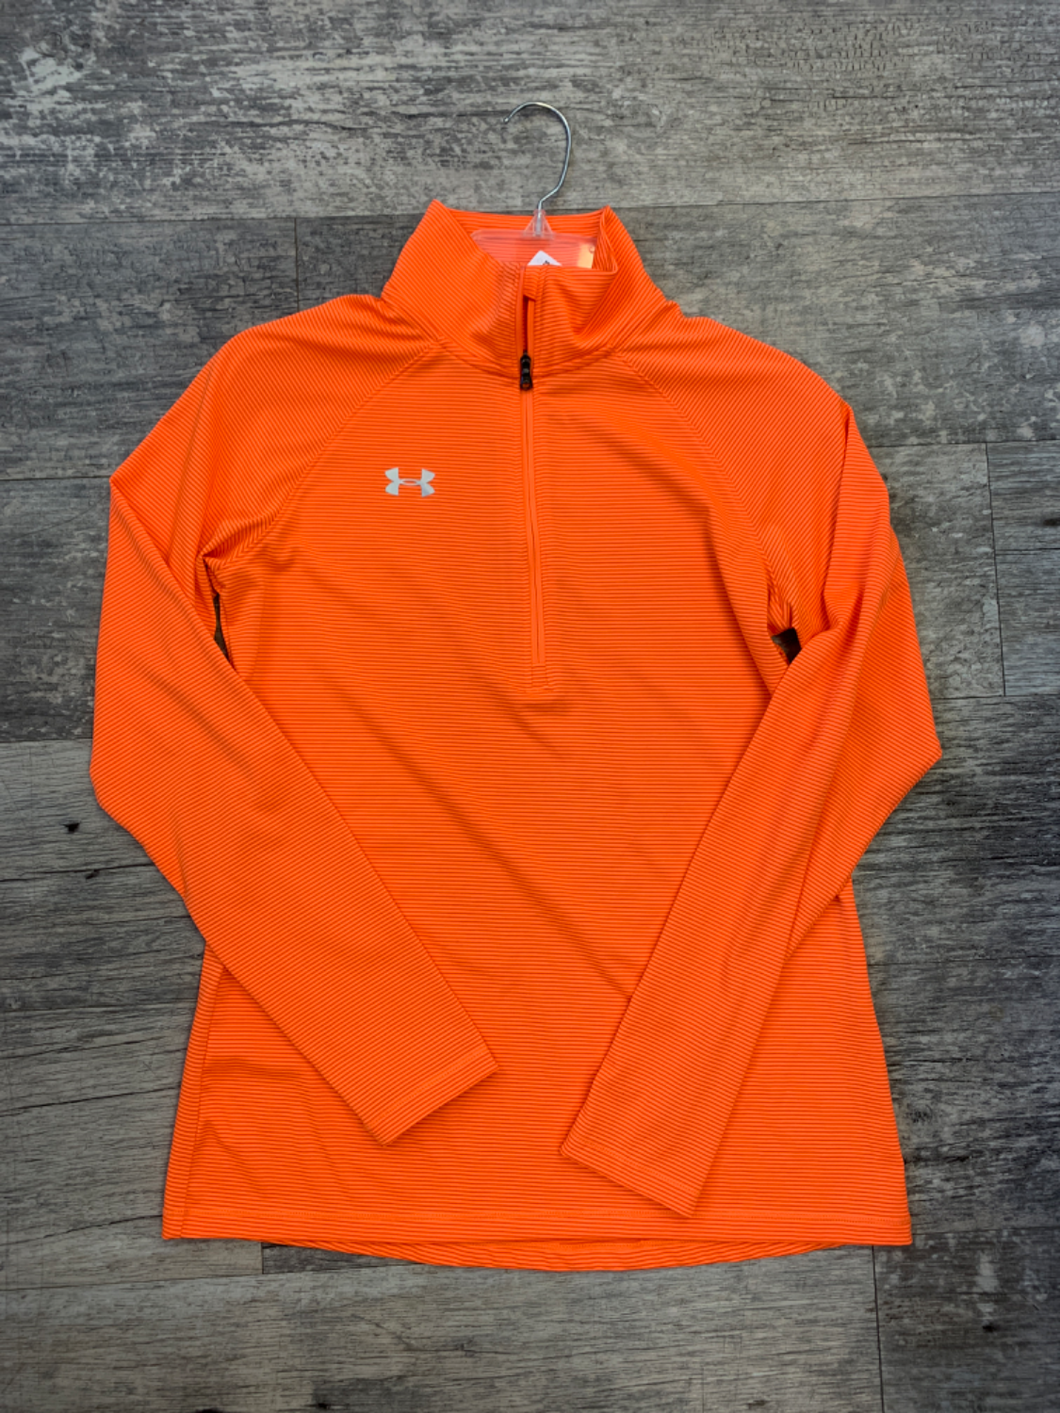 Under Armour Athletic Jacket Size Extra Small